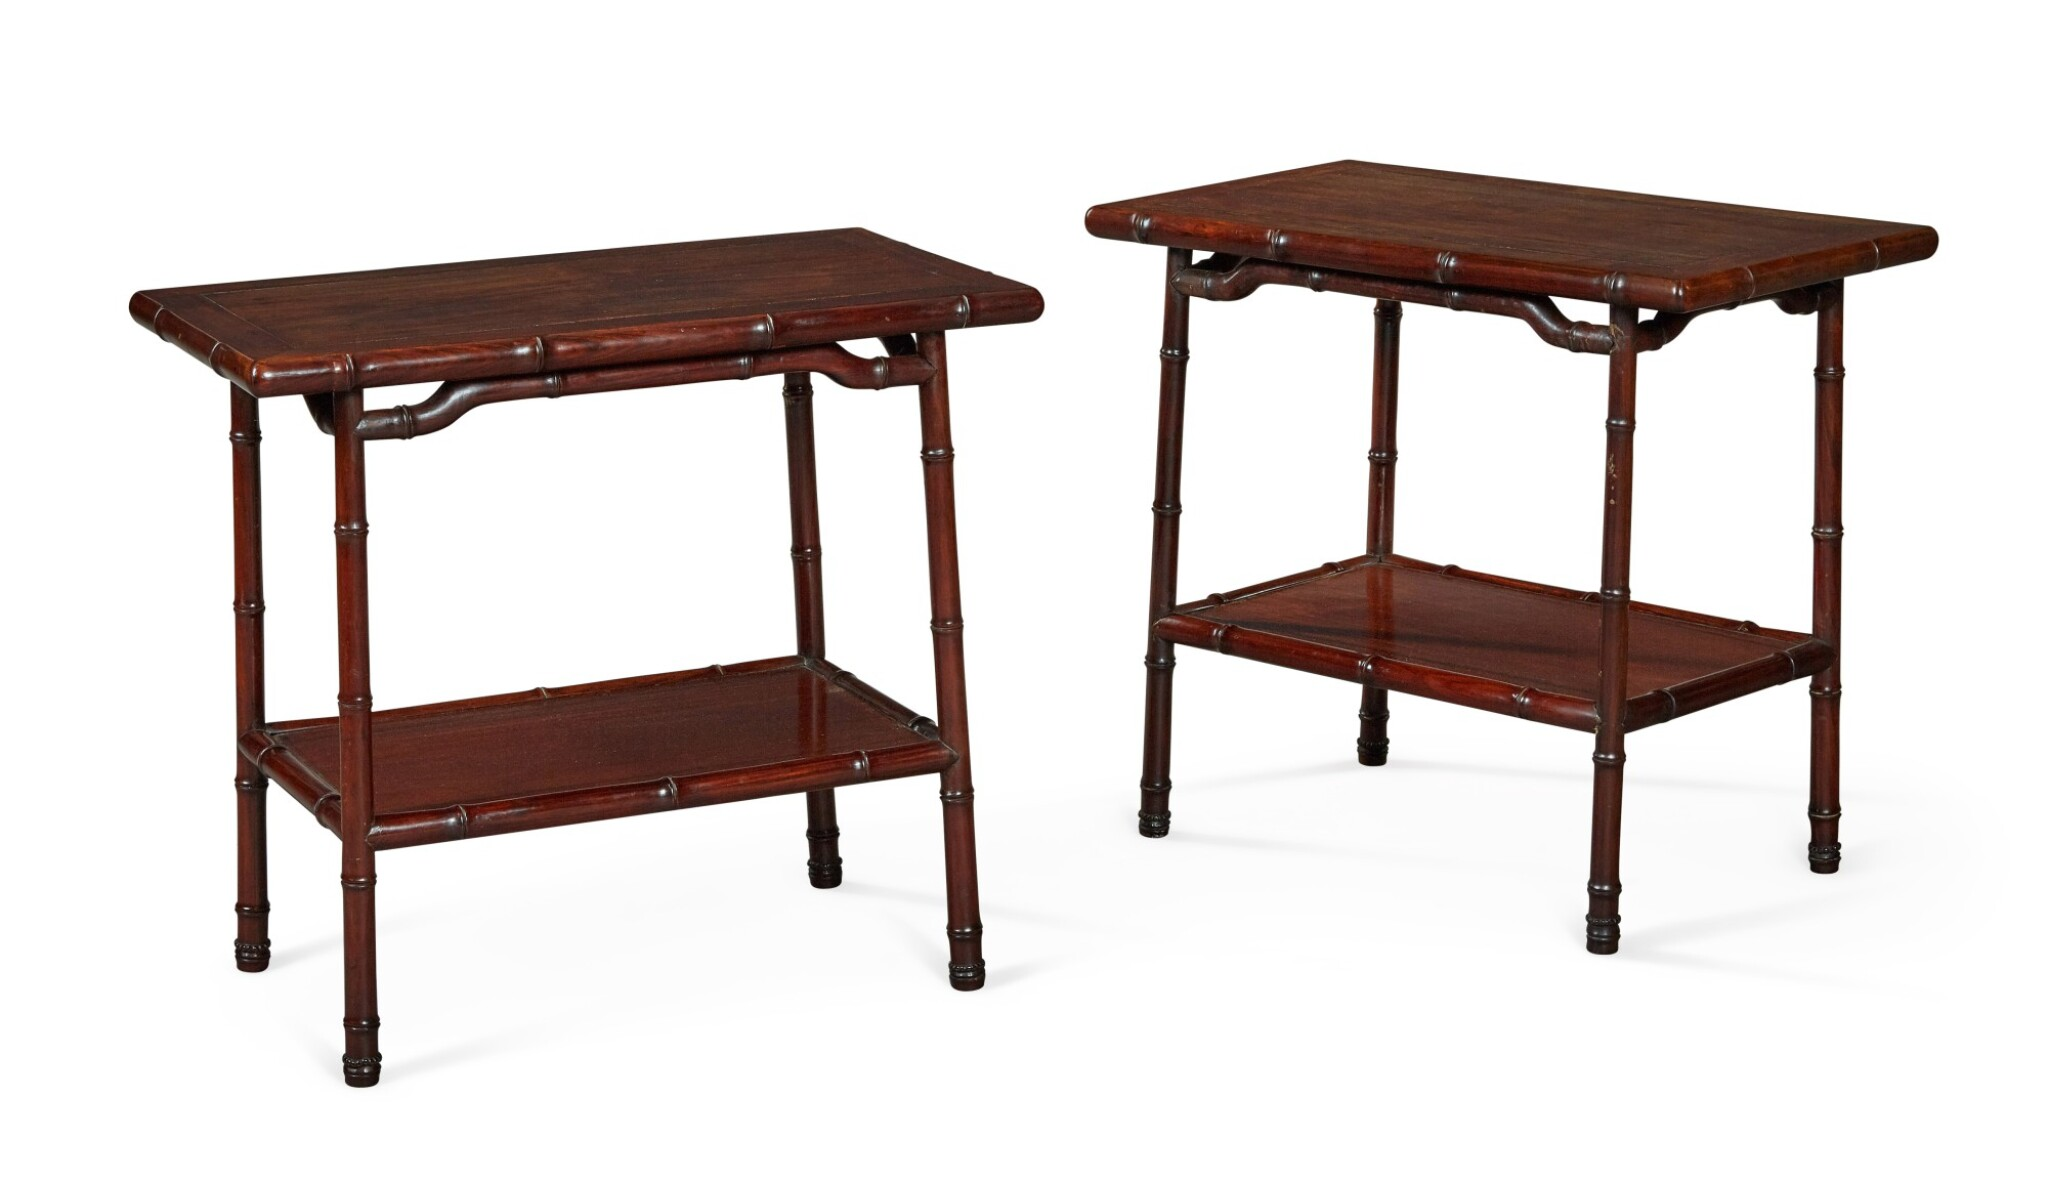 View full screen - View 1 of Lot 141. A PAIR OF CHINESE HARDWOOD OCCASIONAL TABLES, EARLY 20TH CENTURY.